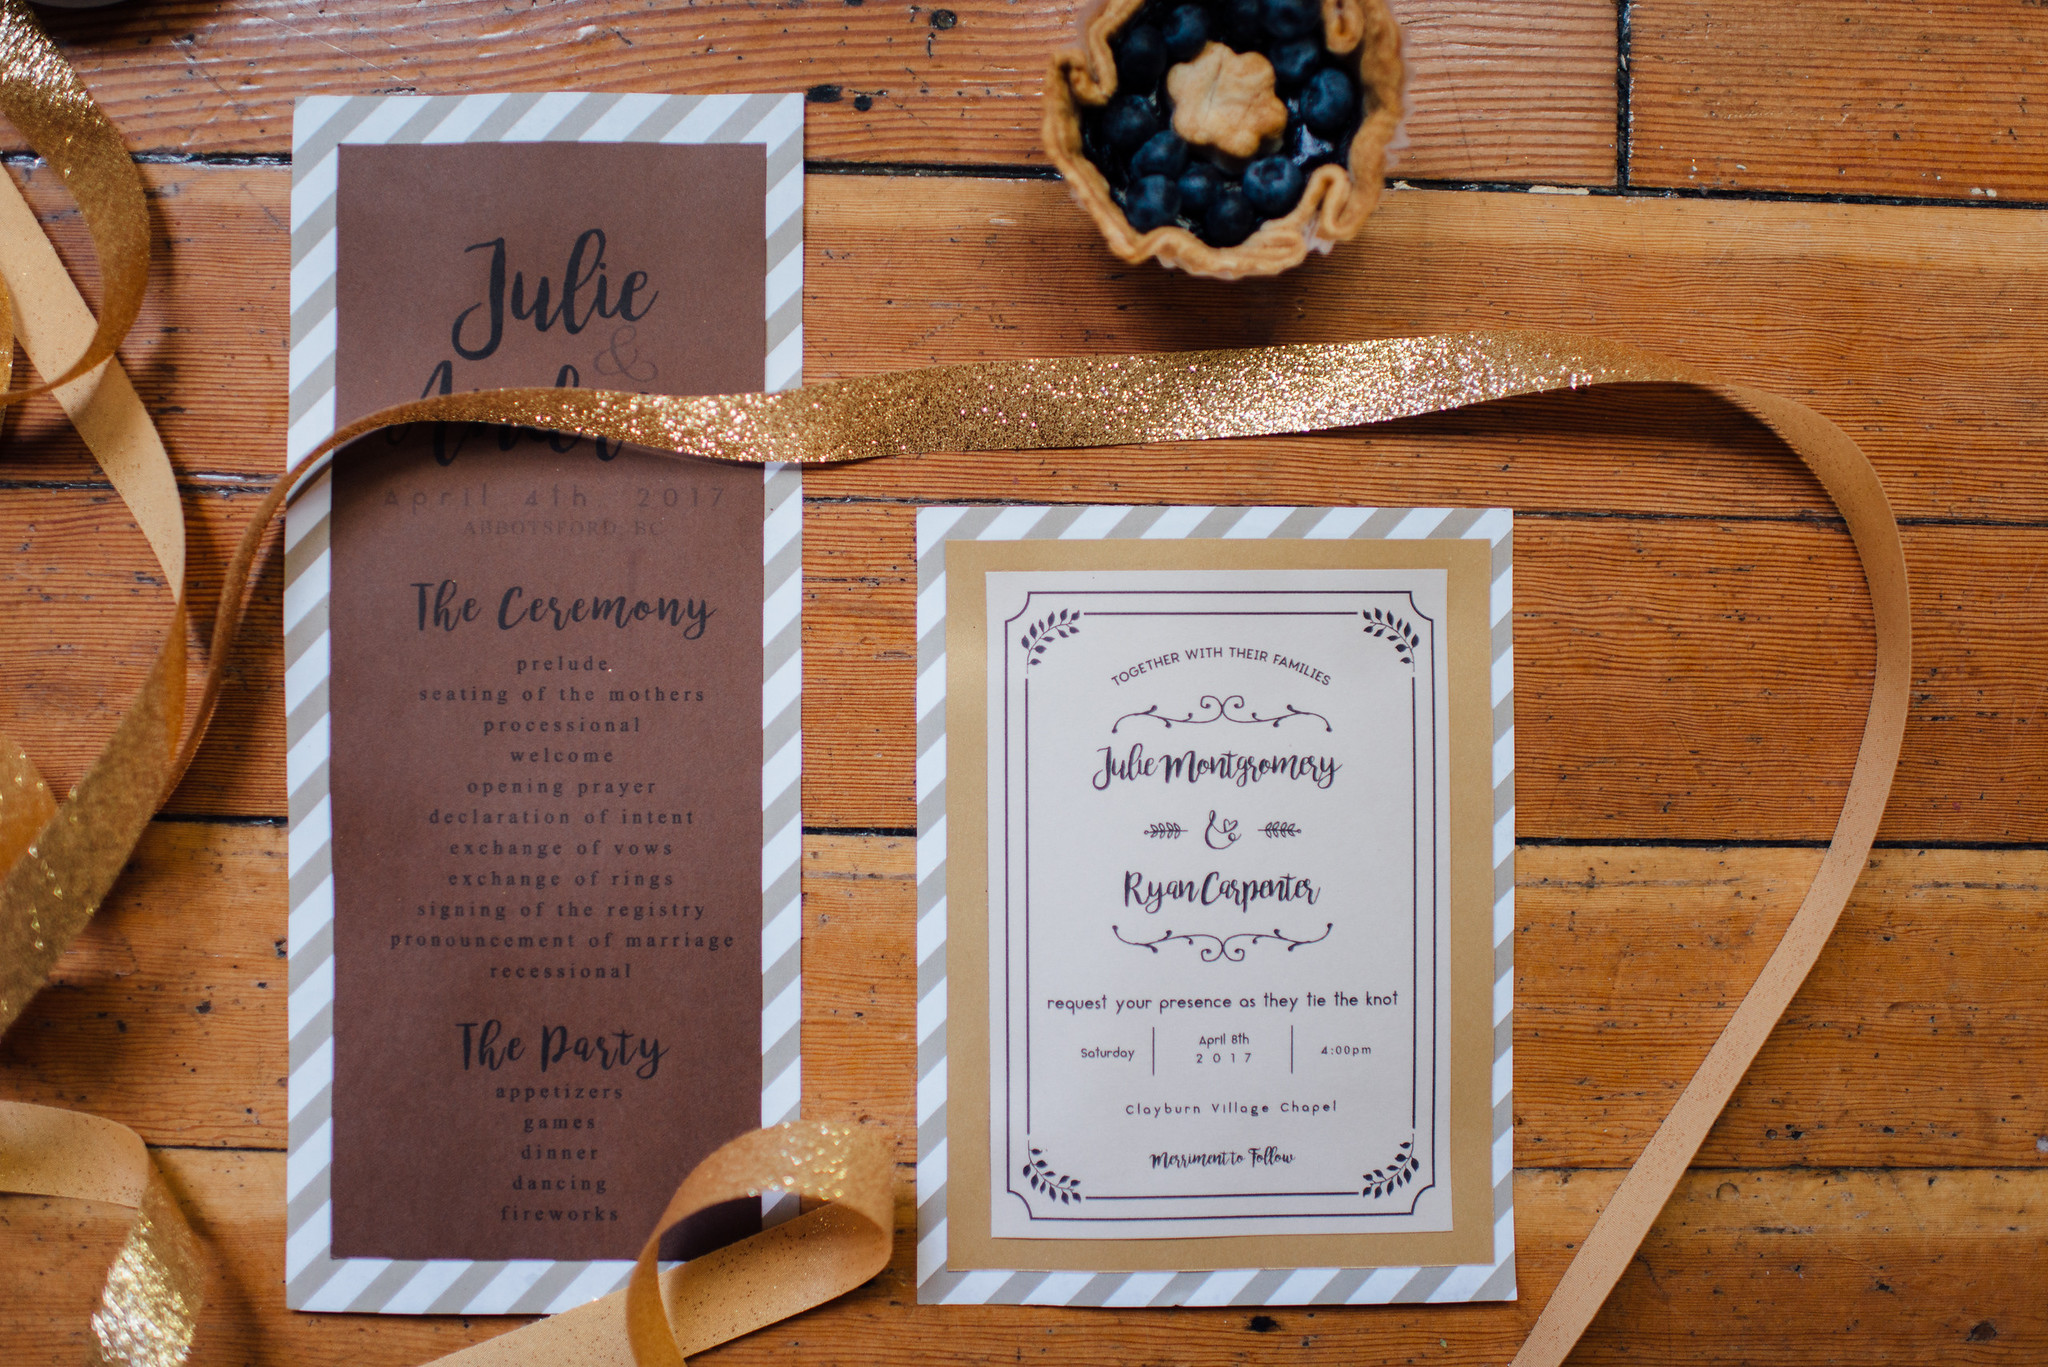 Clayburn village wedding details